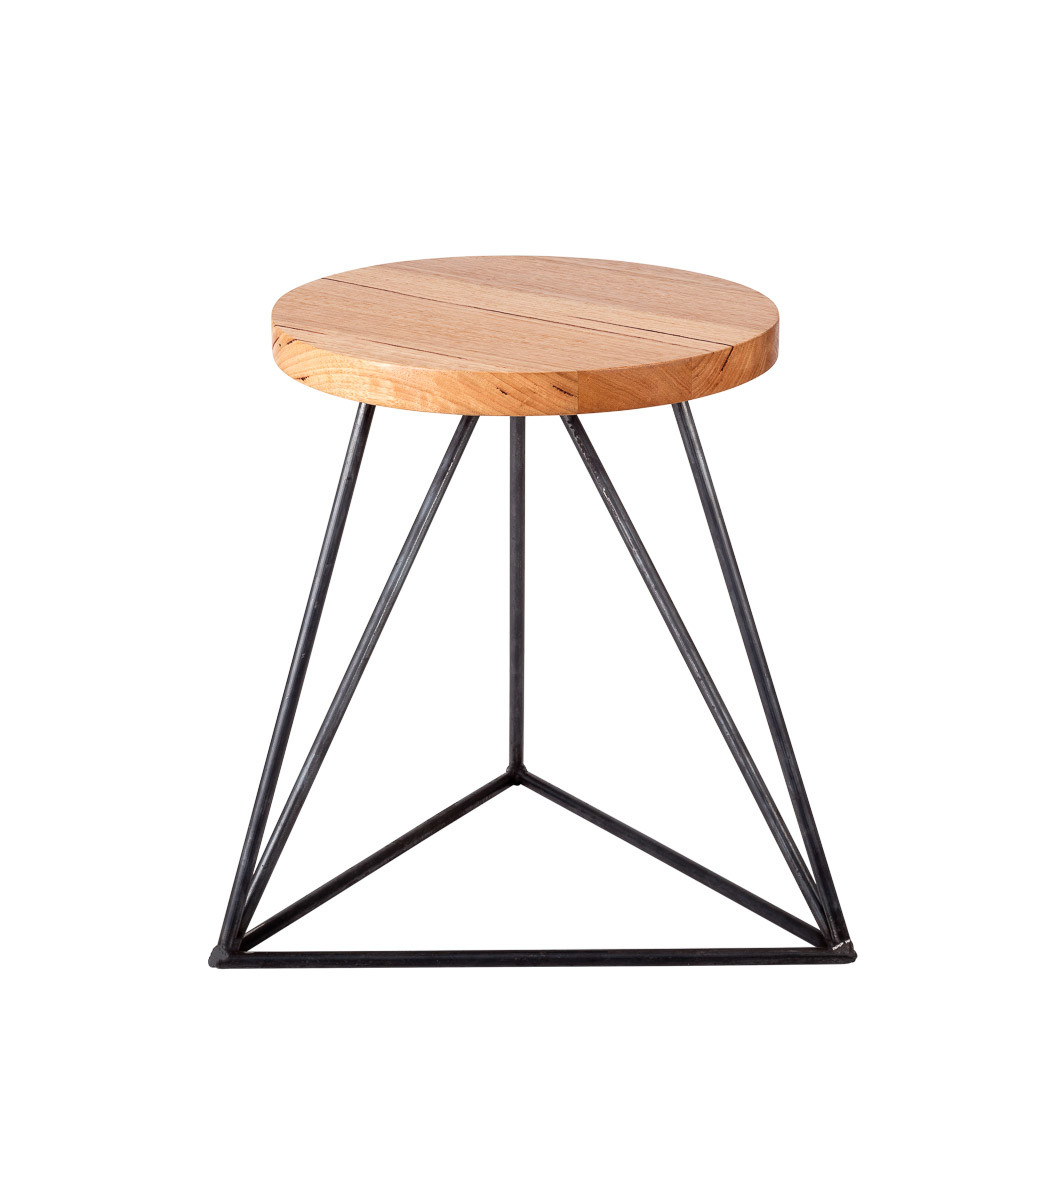 Furniture stools Hairpin Legs Stool industrial triangle front view round top